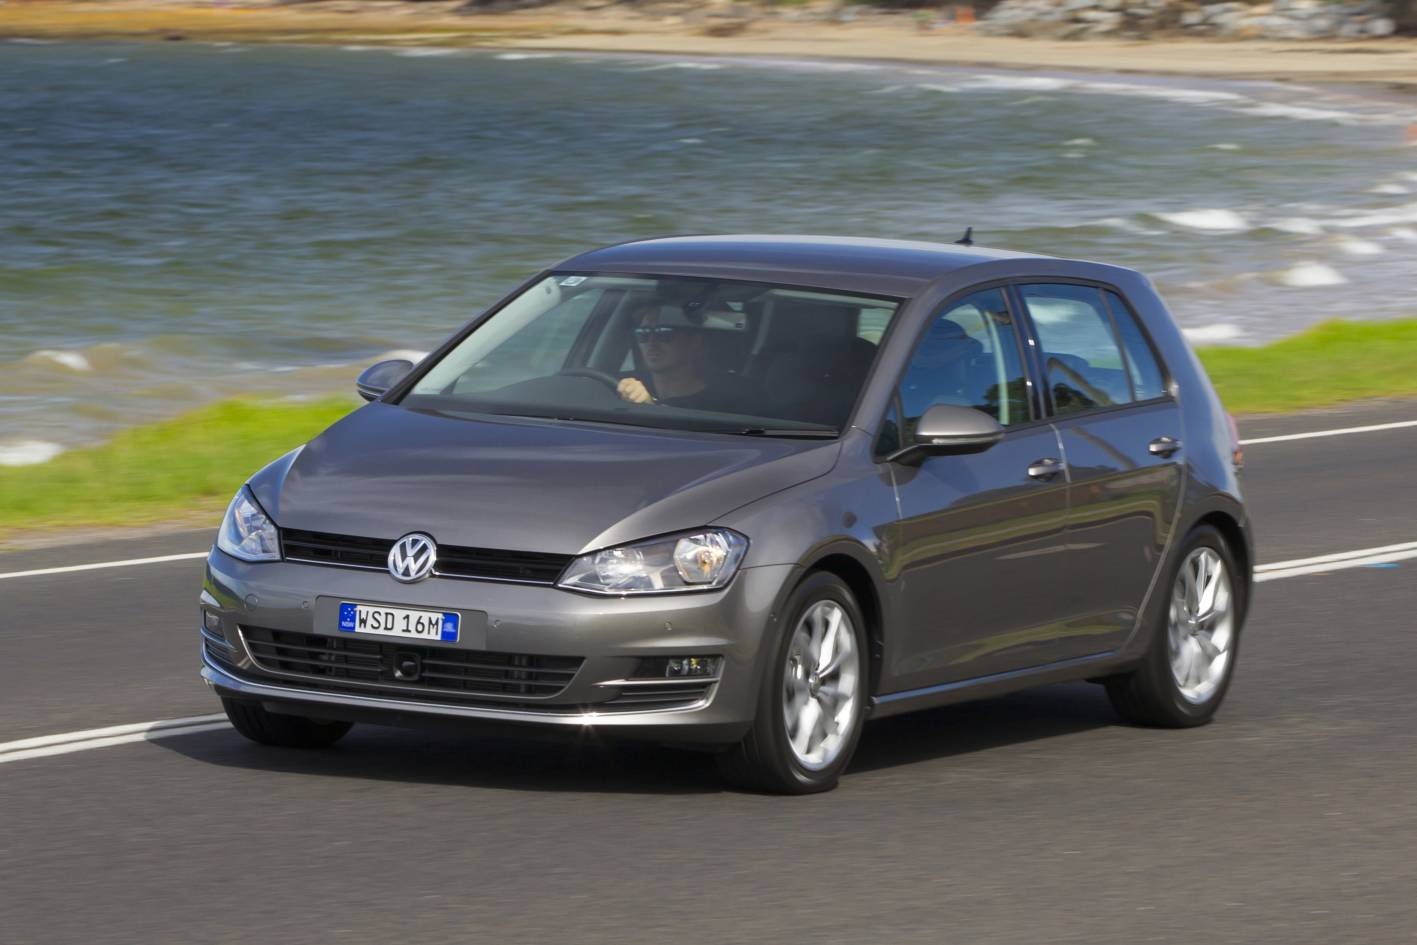 Vw Golf Turbocharged Engines Vw Free Engine Image For